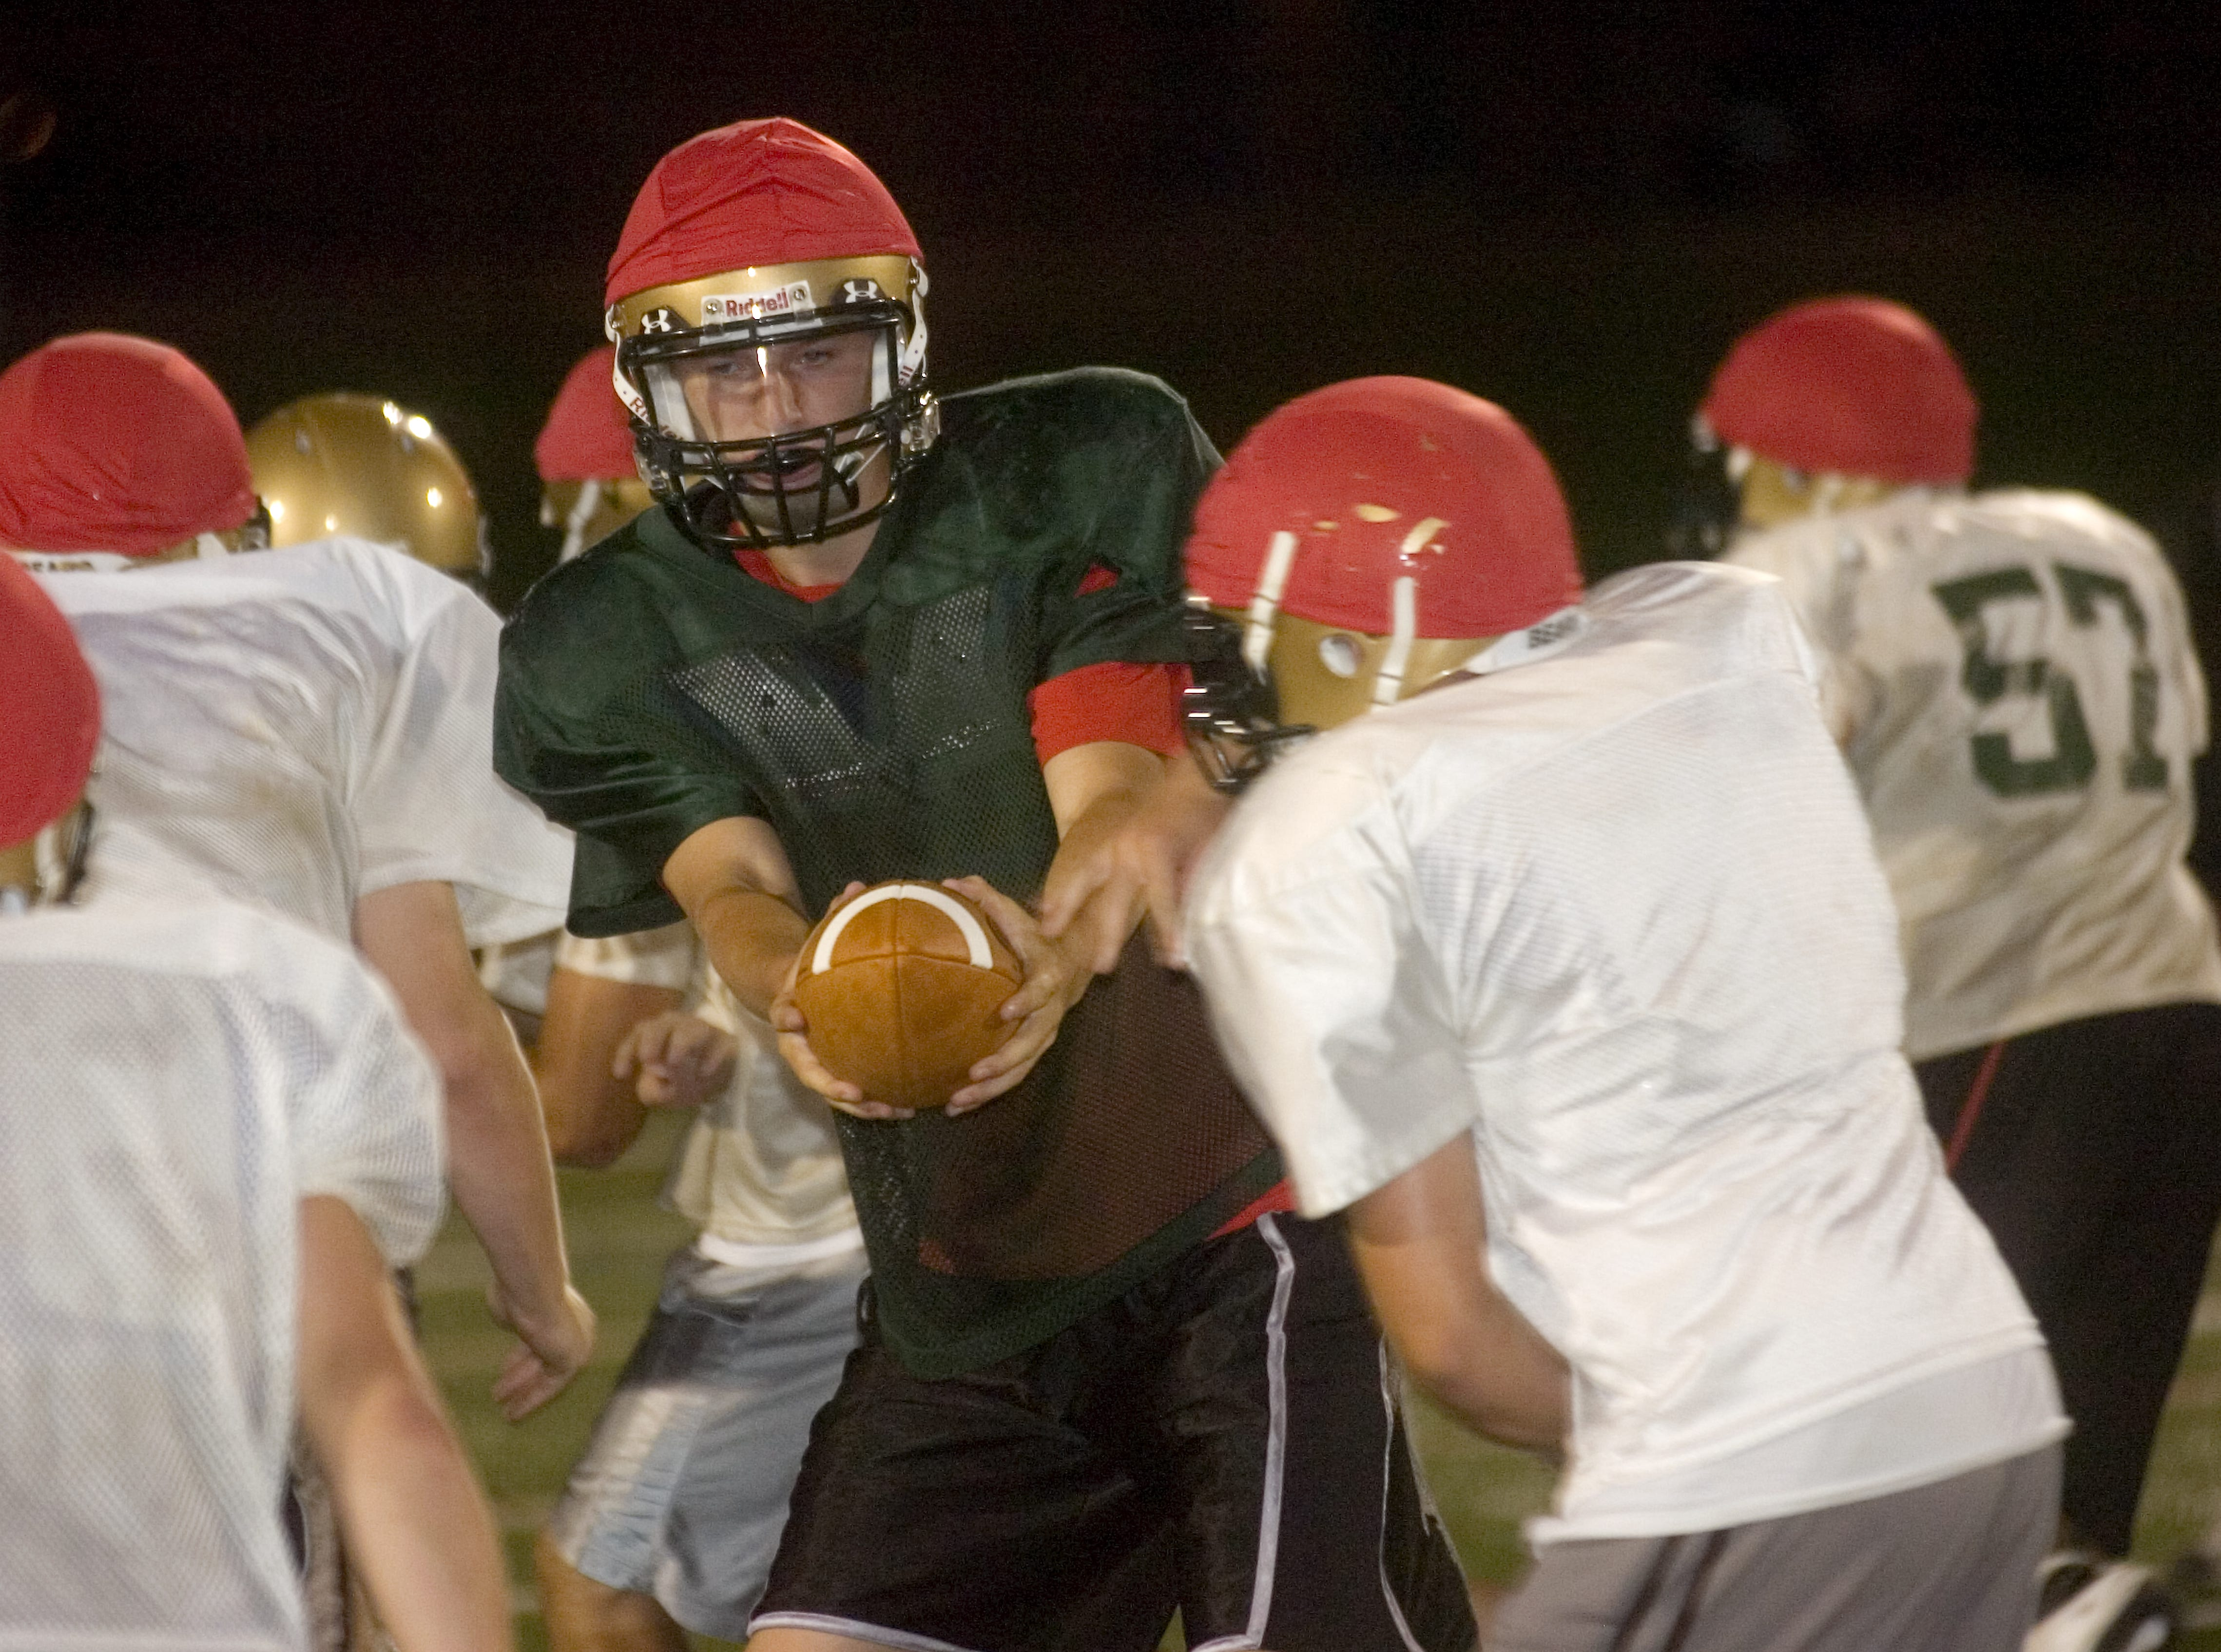 Vestal High School quarterback Caleb Scepaniak practices in 2009 at Dick Hoover Stadium in Vestal.